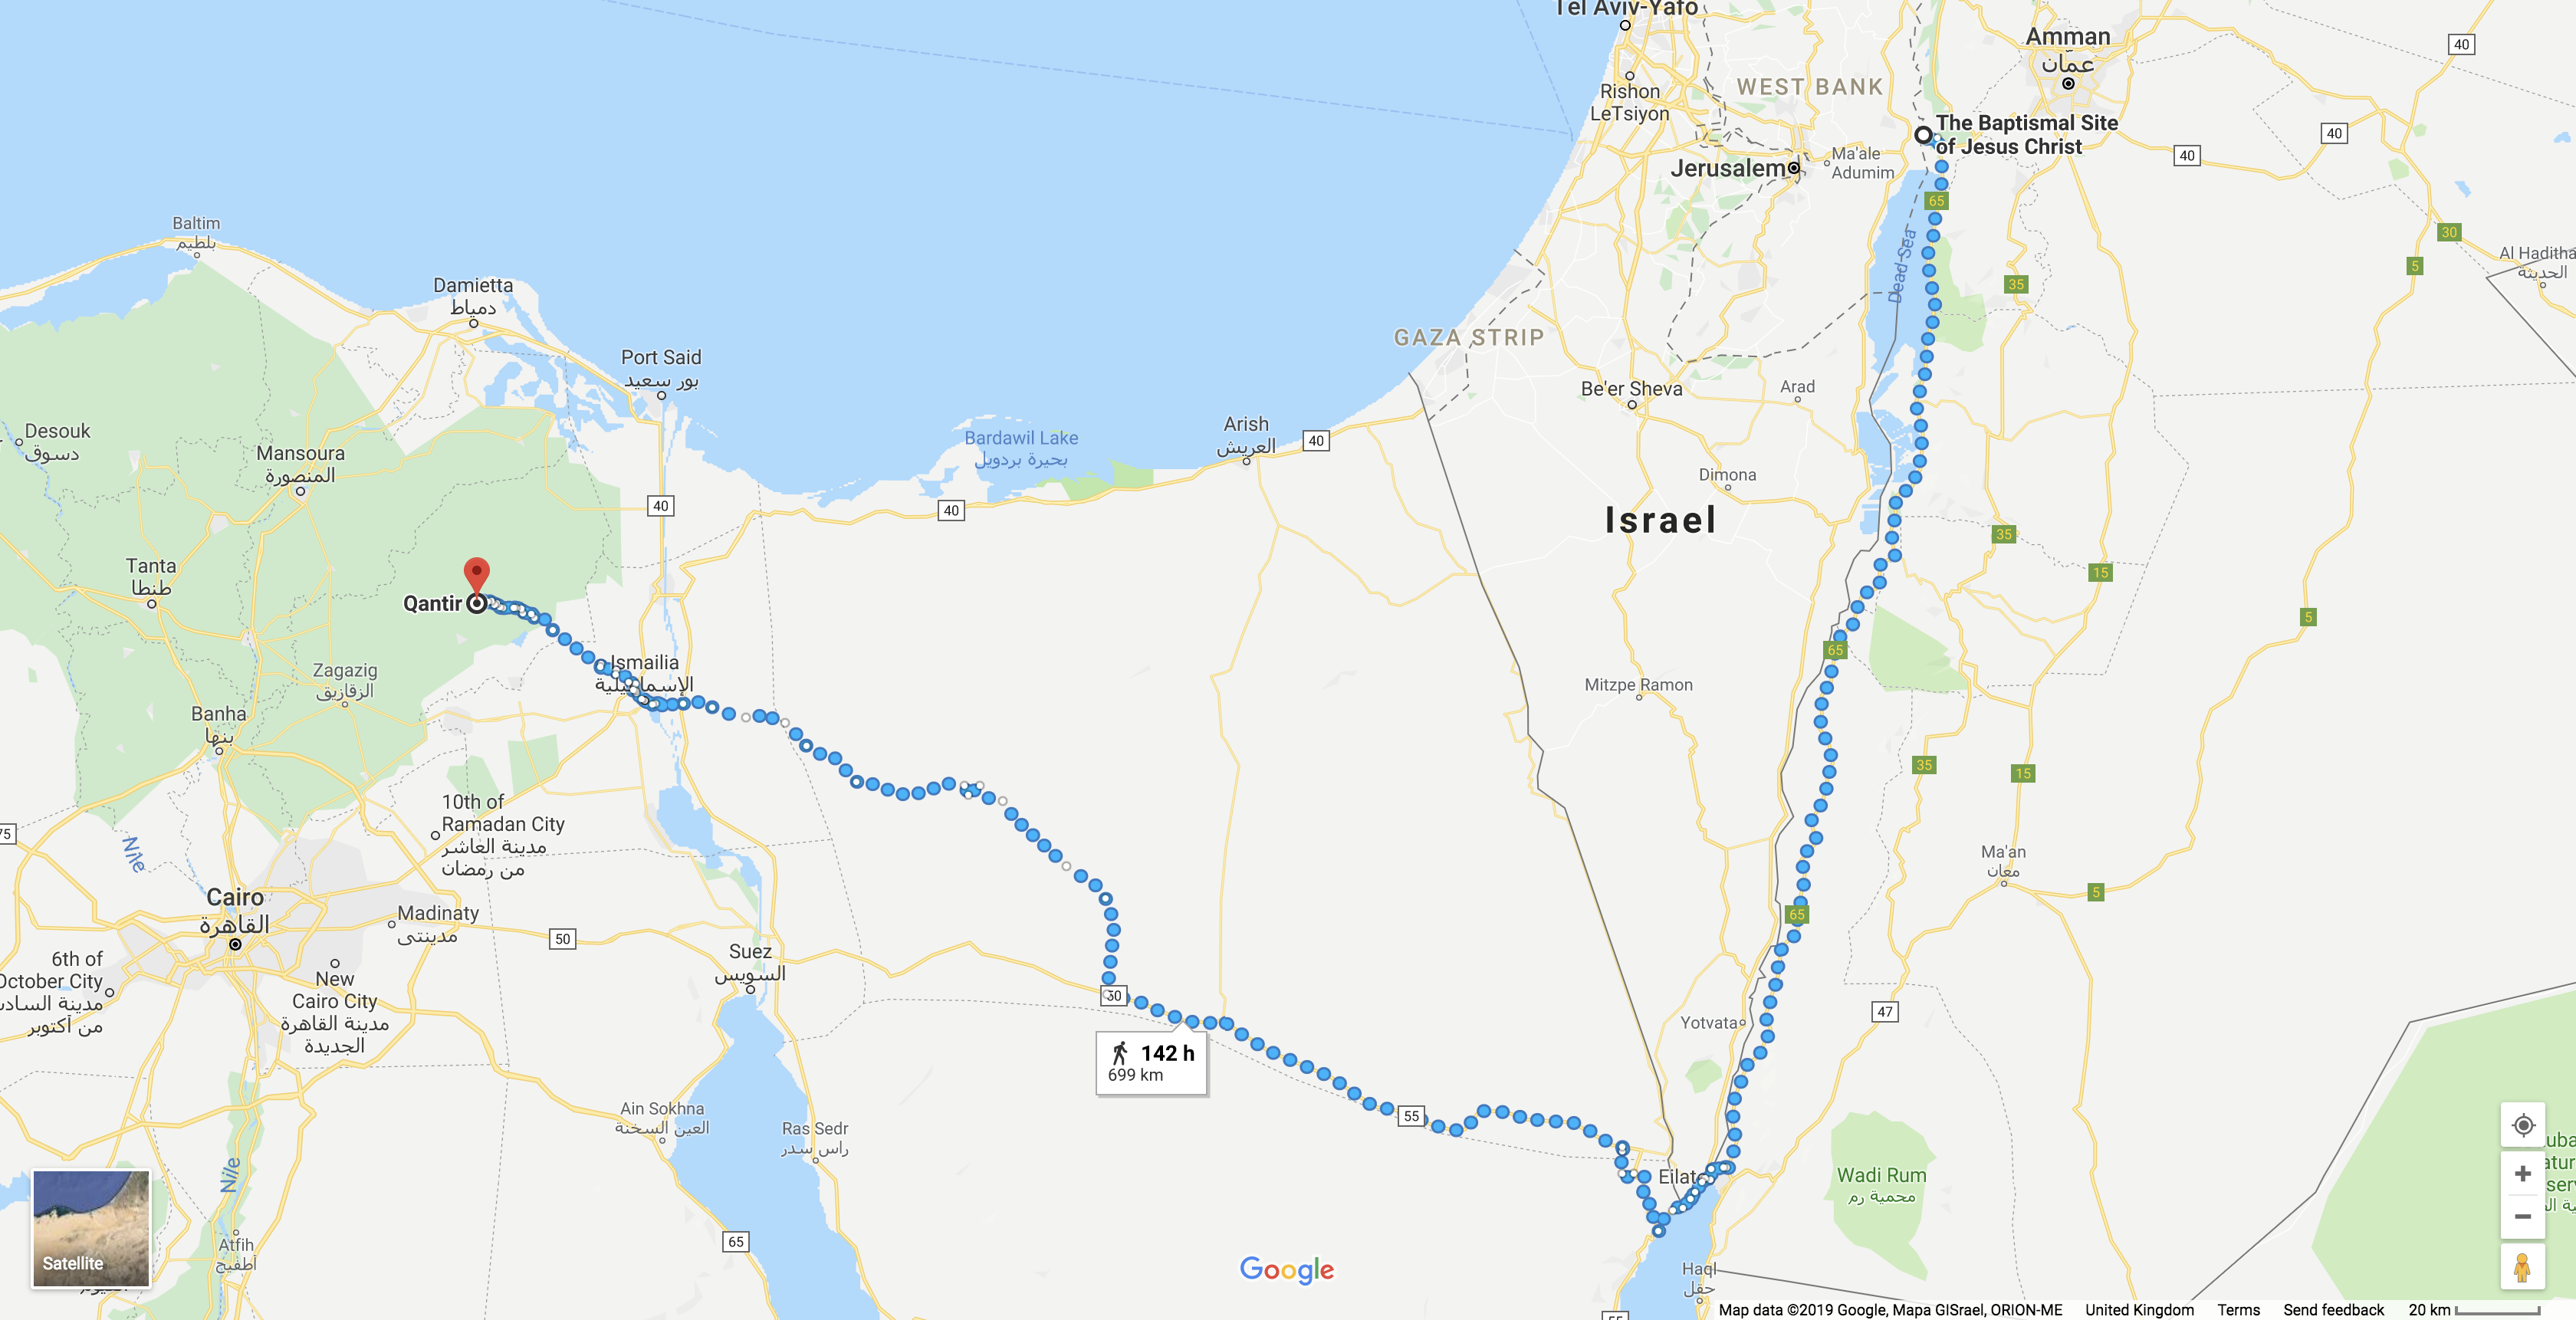 Google Maps Israelites Wilderness Journey Suggestion